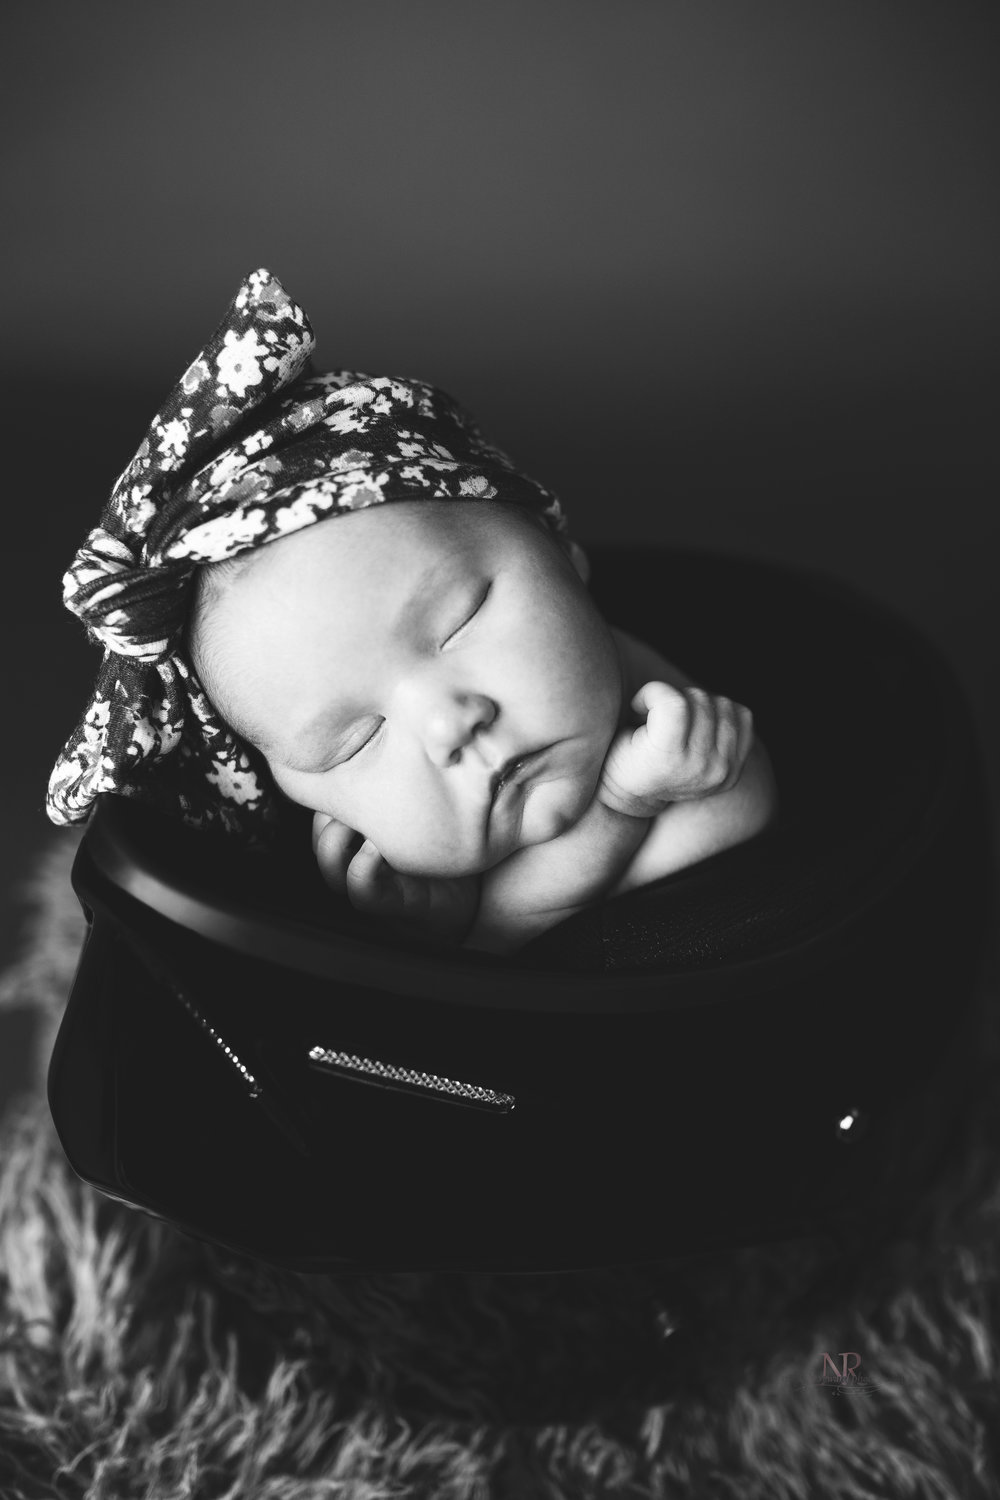 Newborn close up portrait in black and white of baby girl in her dad's motorcycle helmet taken by Nature's Reward Photography